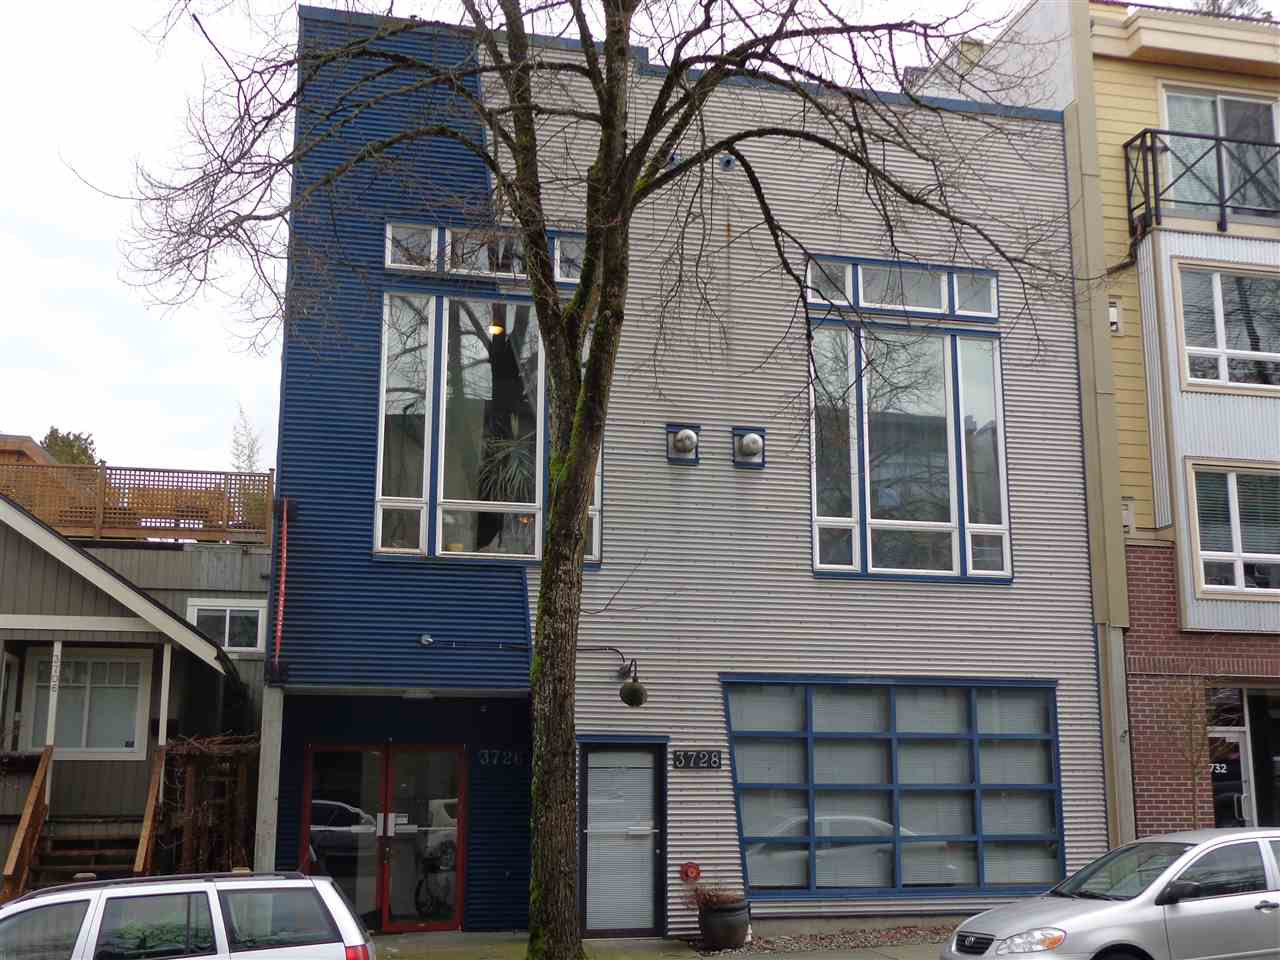 Photo 10: 1 3726 COMMERCIAL STREET in Vancouver: Victoria VE Condo for sale (Vancouver East)  : MLS(r) # R2037382